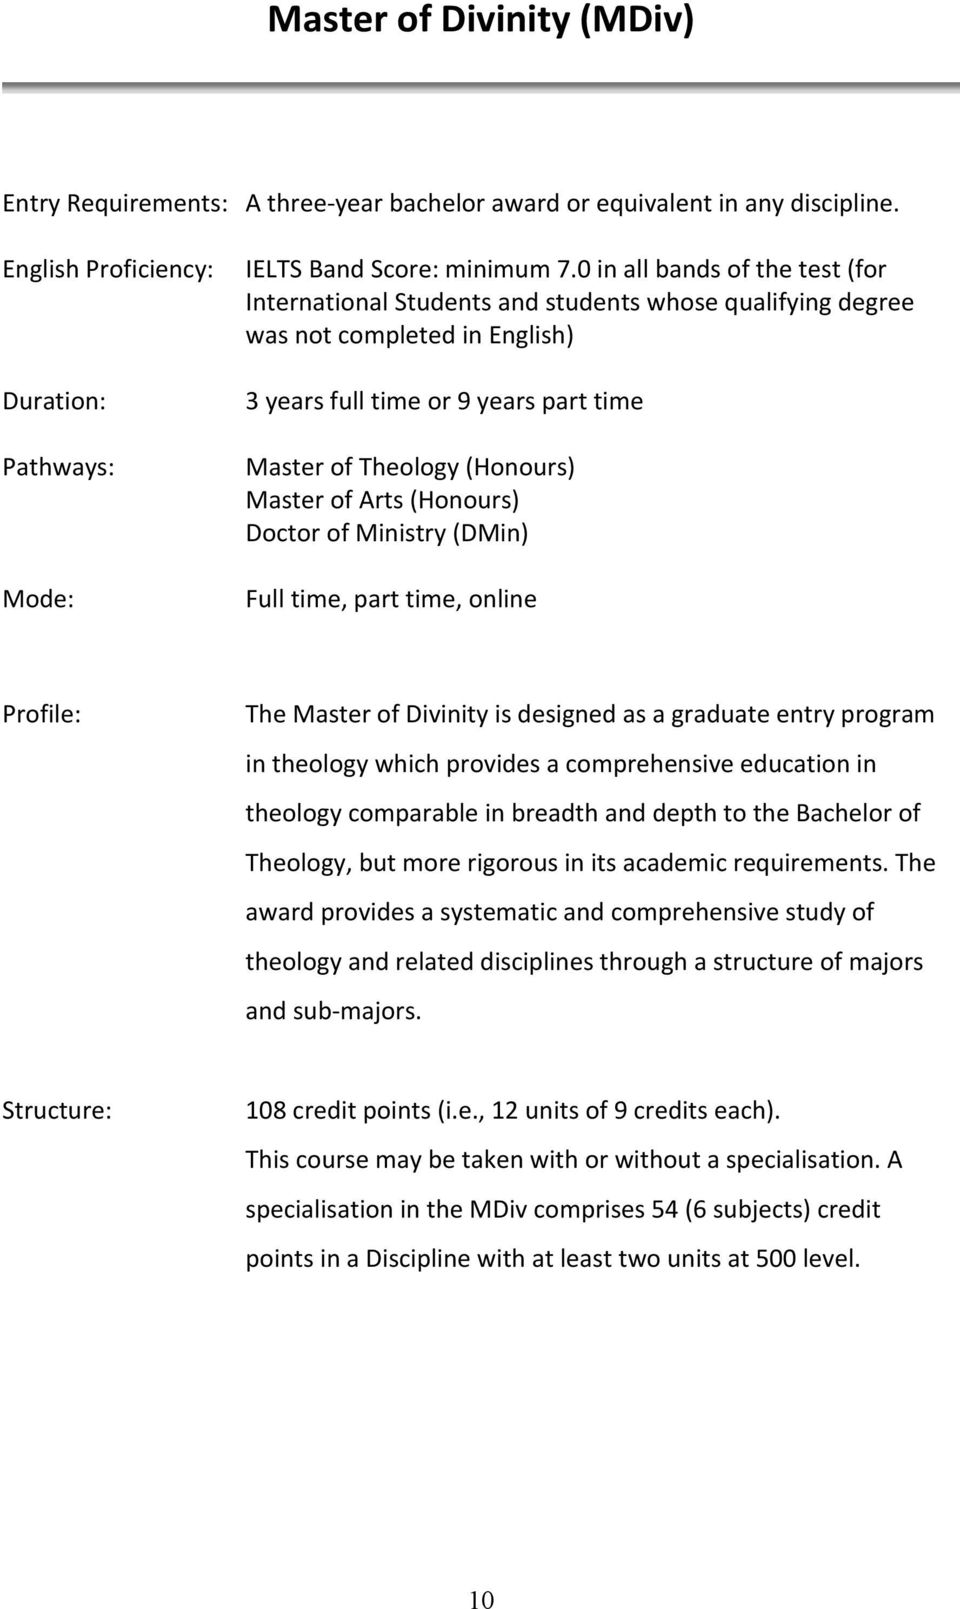 Arts (Honours) Doctor of Ministry (DMin) Full time, part time, online Profile: The Master of Divinity is designed as a graduate entry program in theology which provides a comprehensive education in